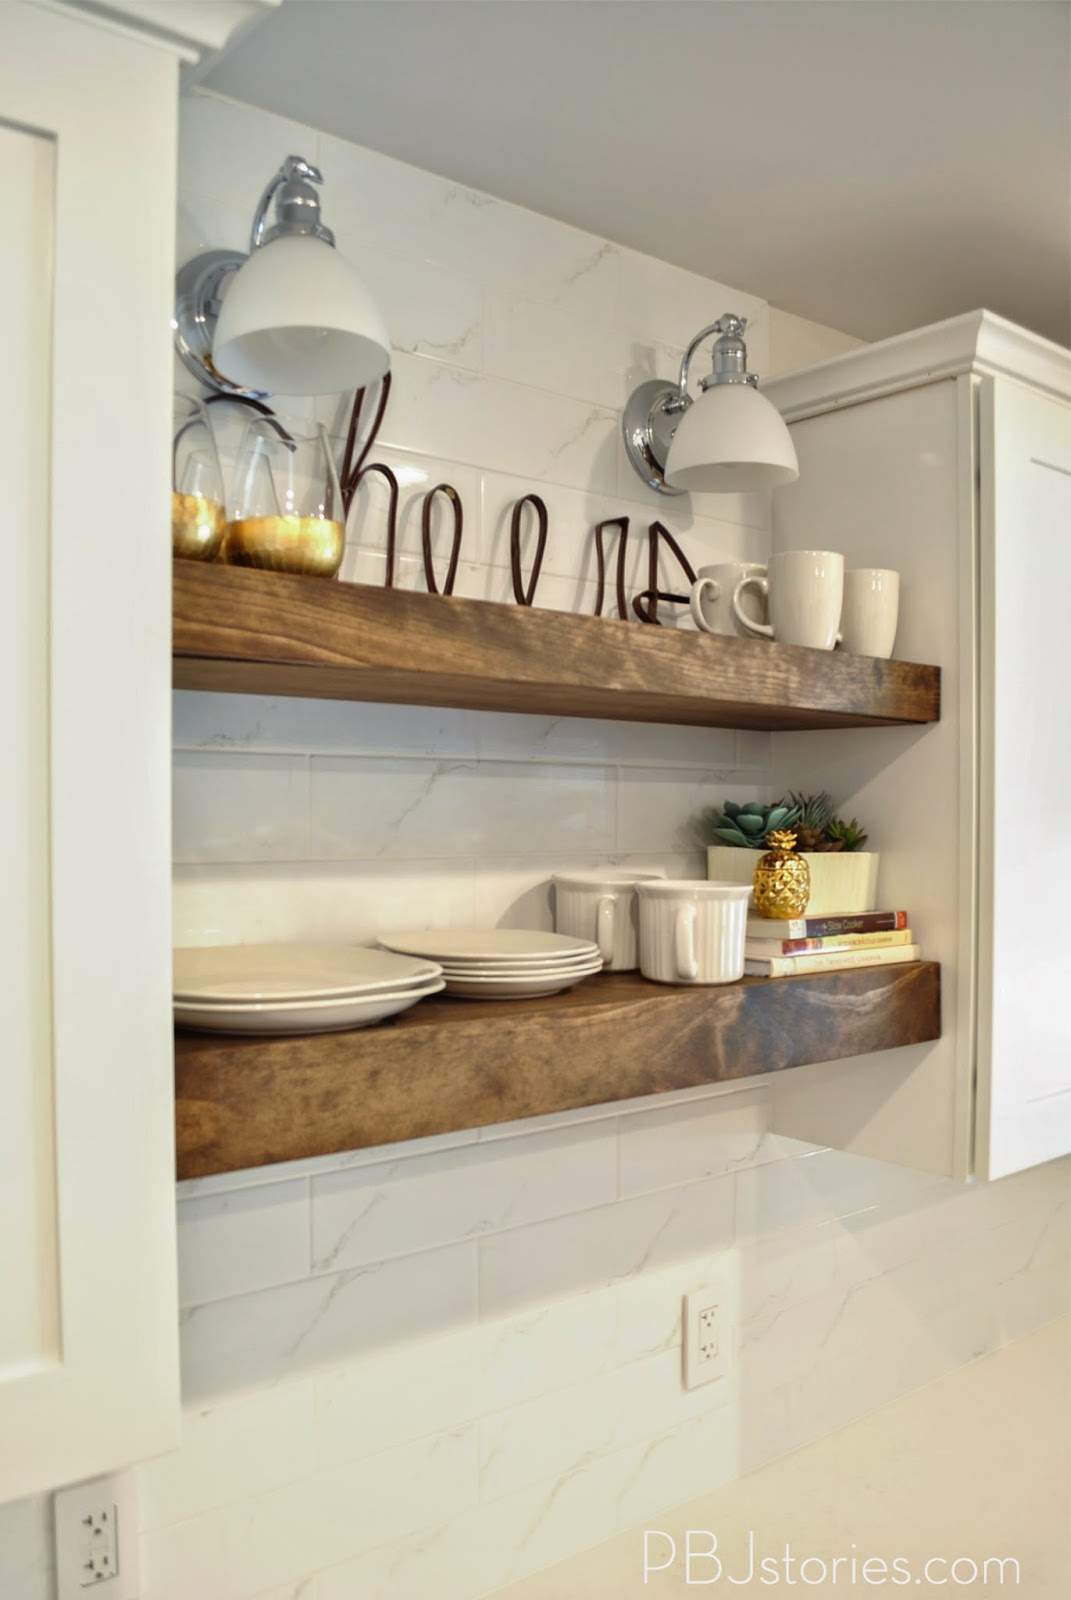 PBJstories: Our DIY Open Kitchen Shelves | #PBJreno